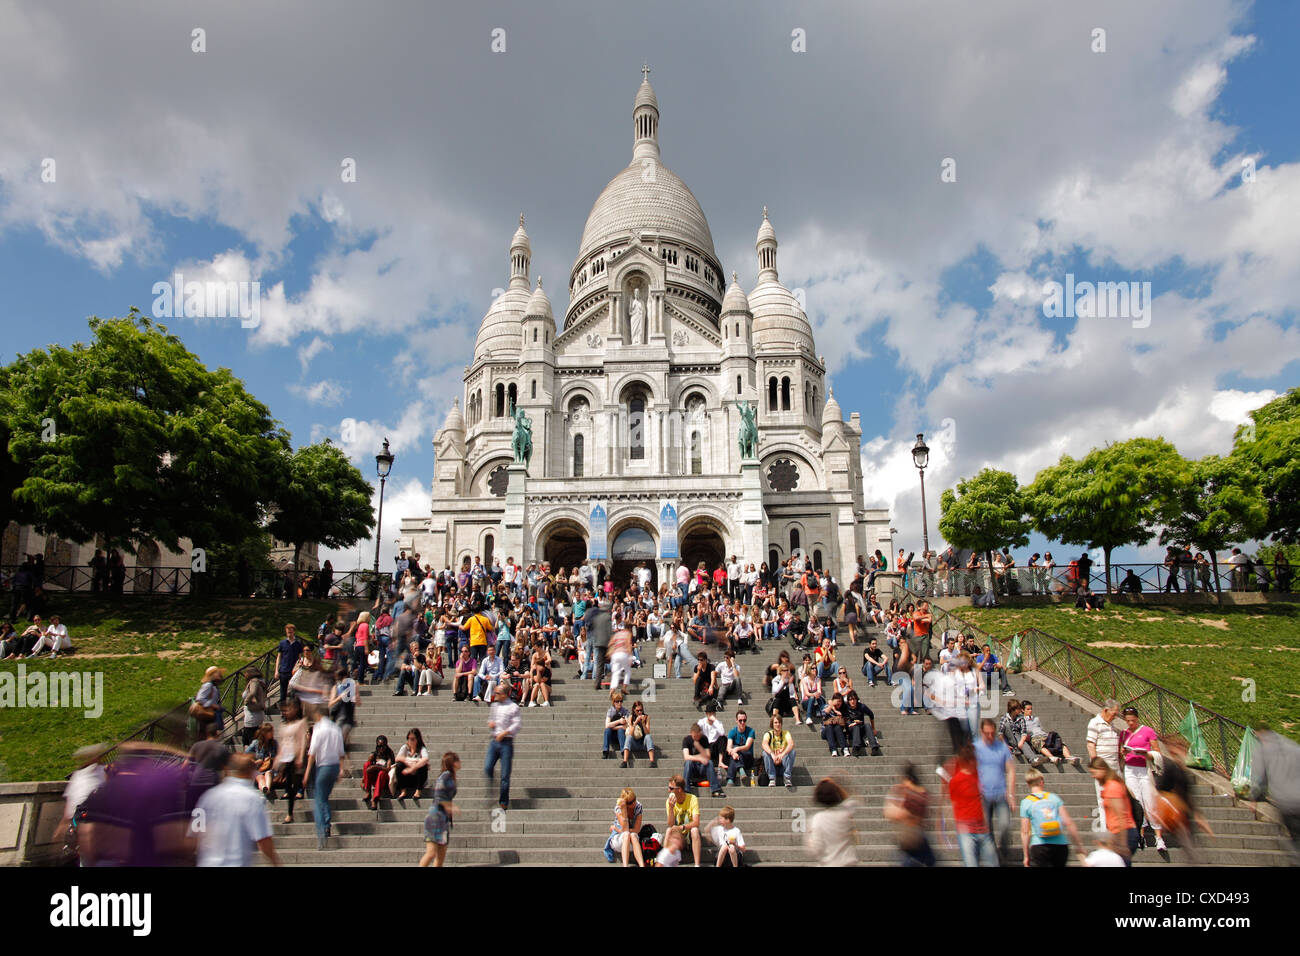 Basilique du Sacre Coeur, Montmartre, Paris, France, Europe - Stock Image